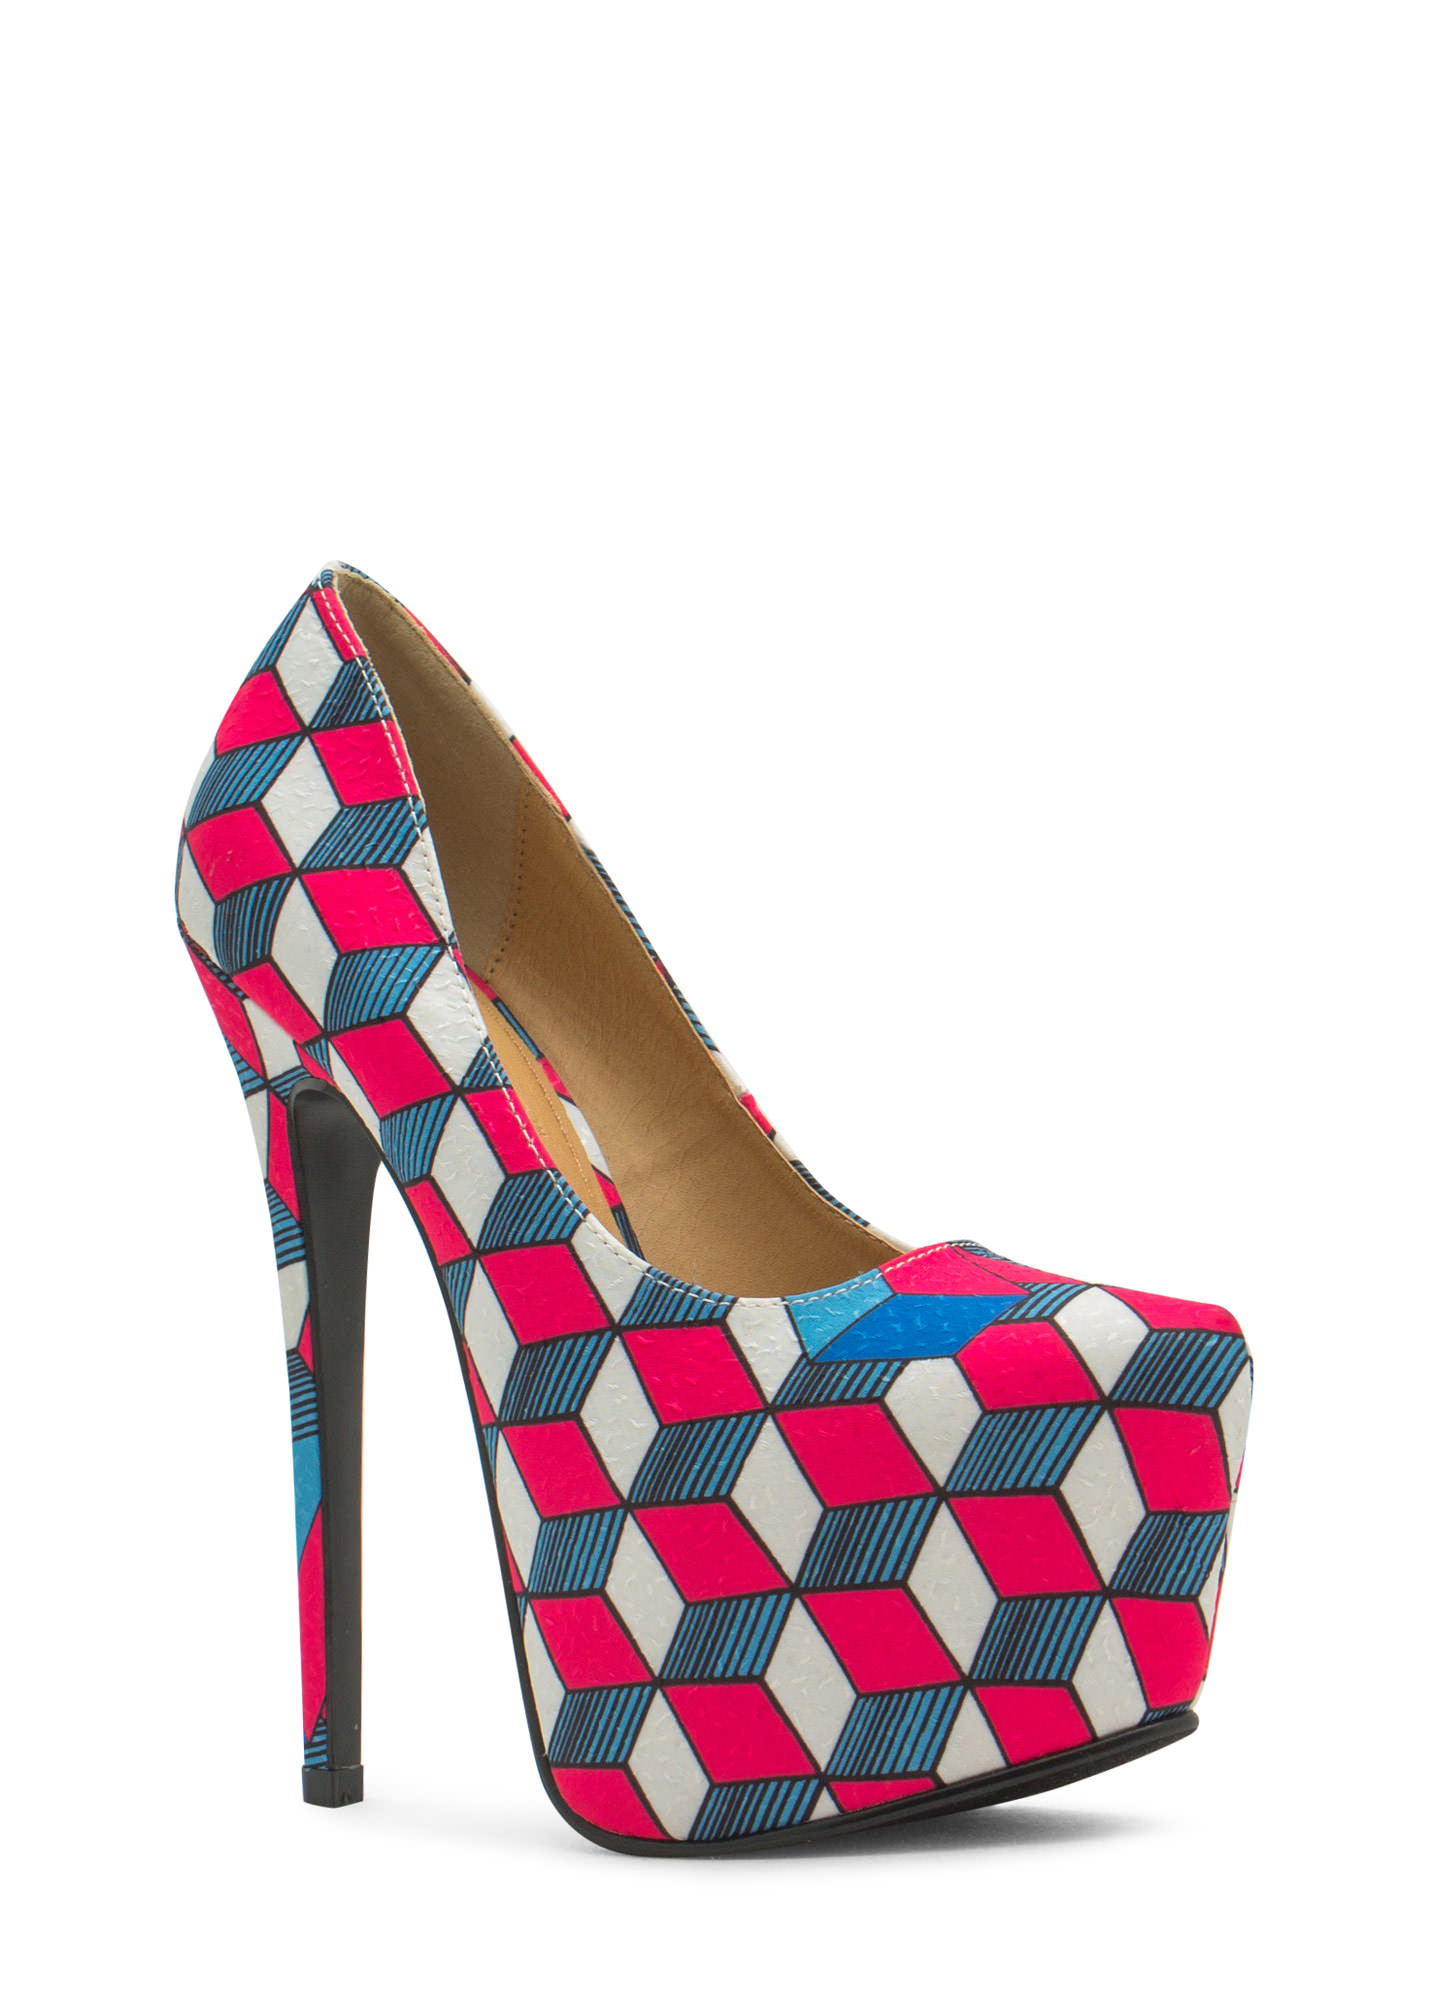 Three Dimensional Geo Platform Heels FUCHSIA (Final Sale)